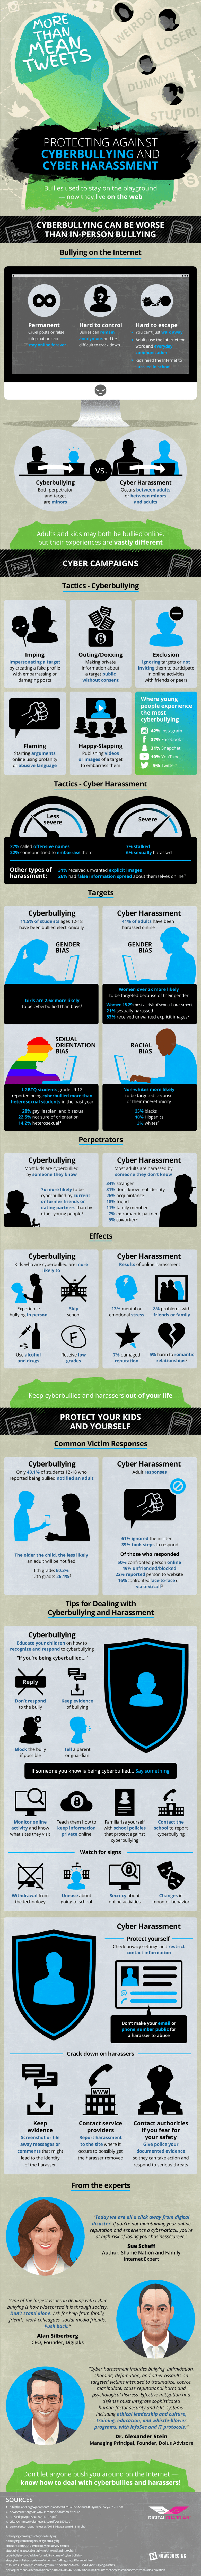 More Than Mean Tweets: Protecting Against Cyberbullying and Cyber Harassment Infographic